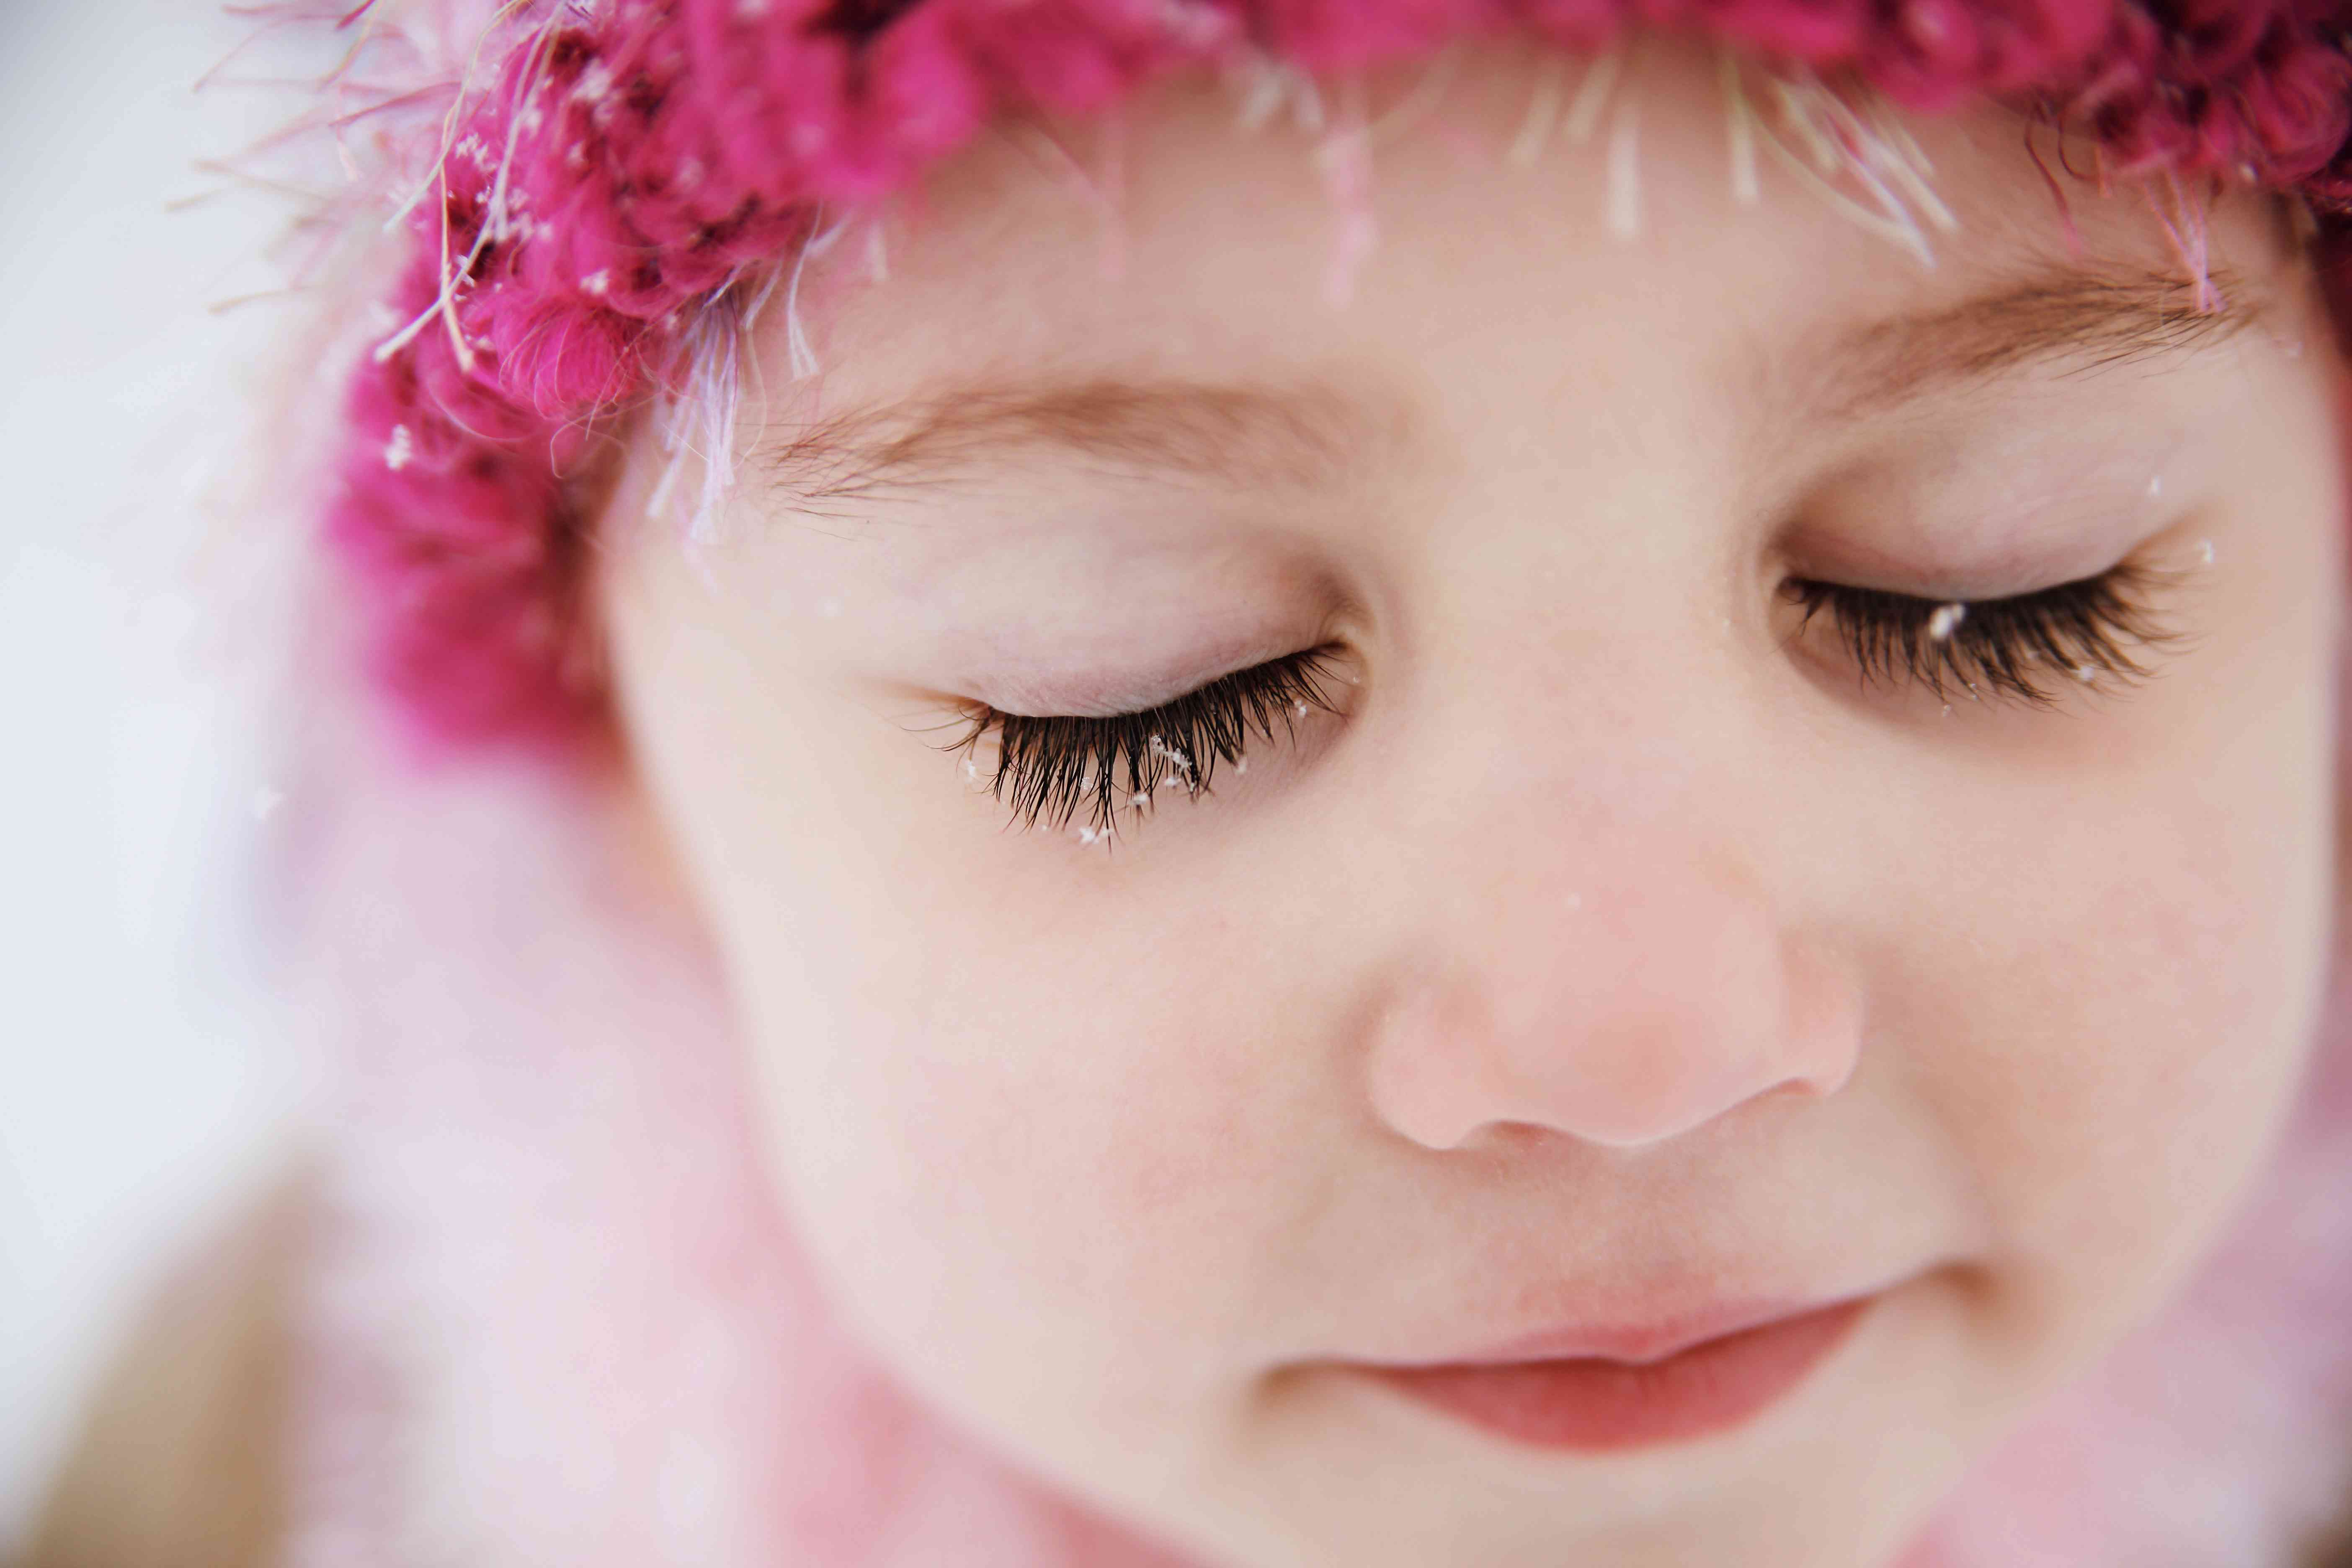 snowflakes in young girl's eyelashes